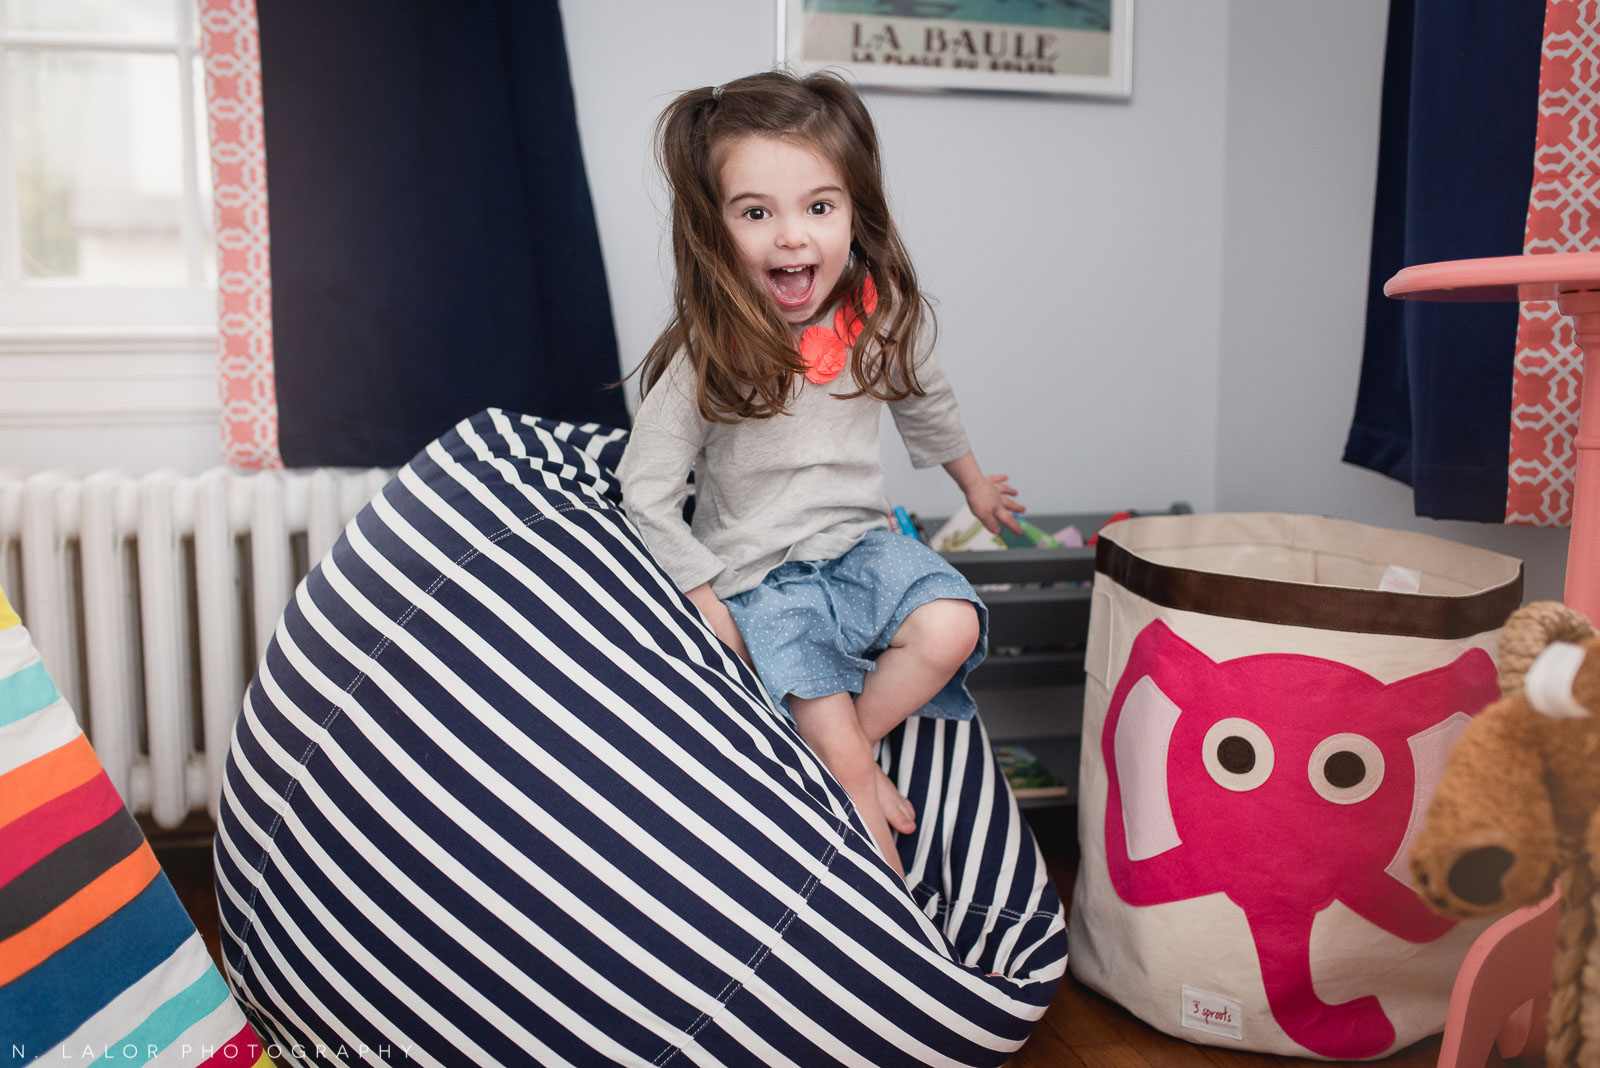 Playing around in her room, a lifestyle editorial portrait of a 3-year old girl. Photo by N. Lalor Photography.